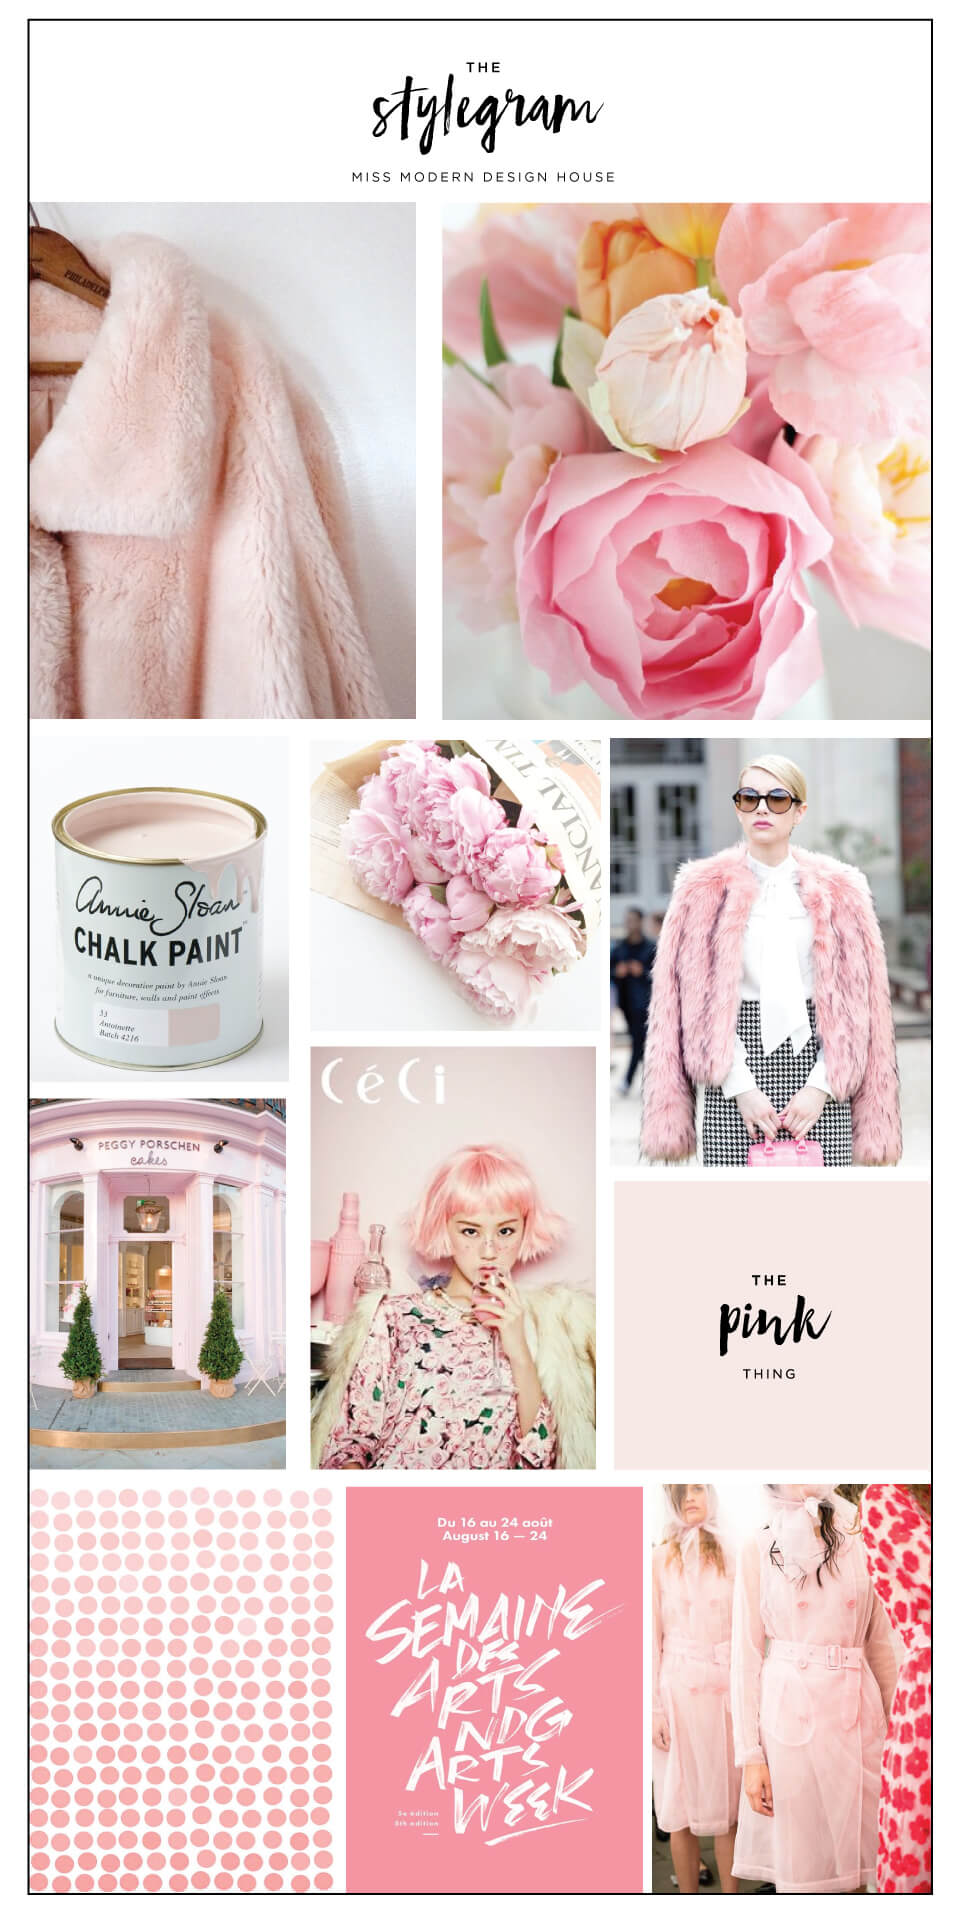 The Stylegram from Deluxemodern. This issue includes Color Theory, a Rosé Slushy, and a Pink Color Palette that will change the way you think of pink